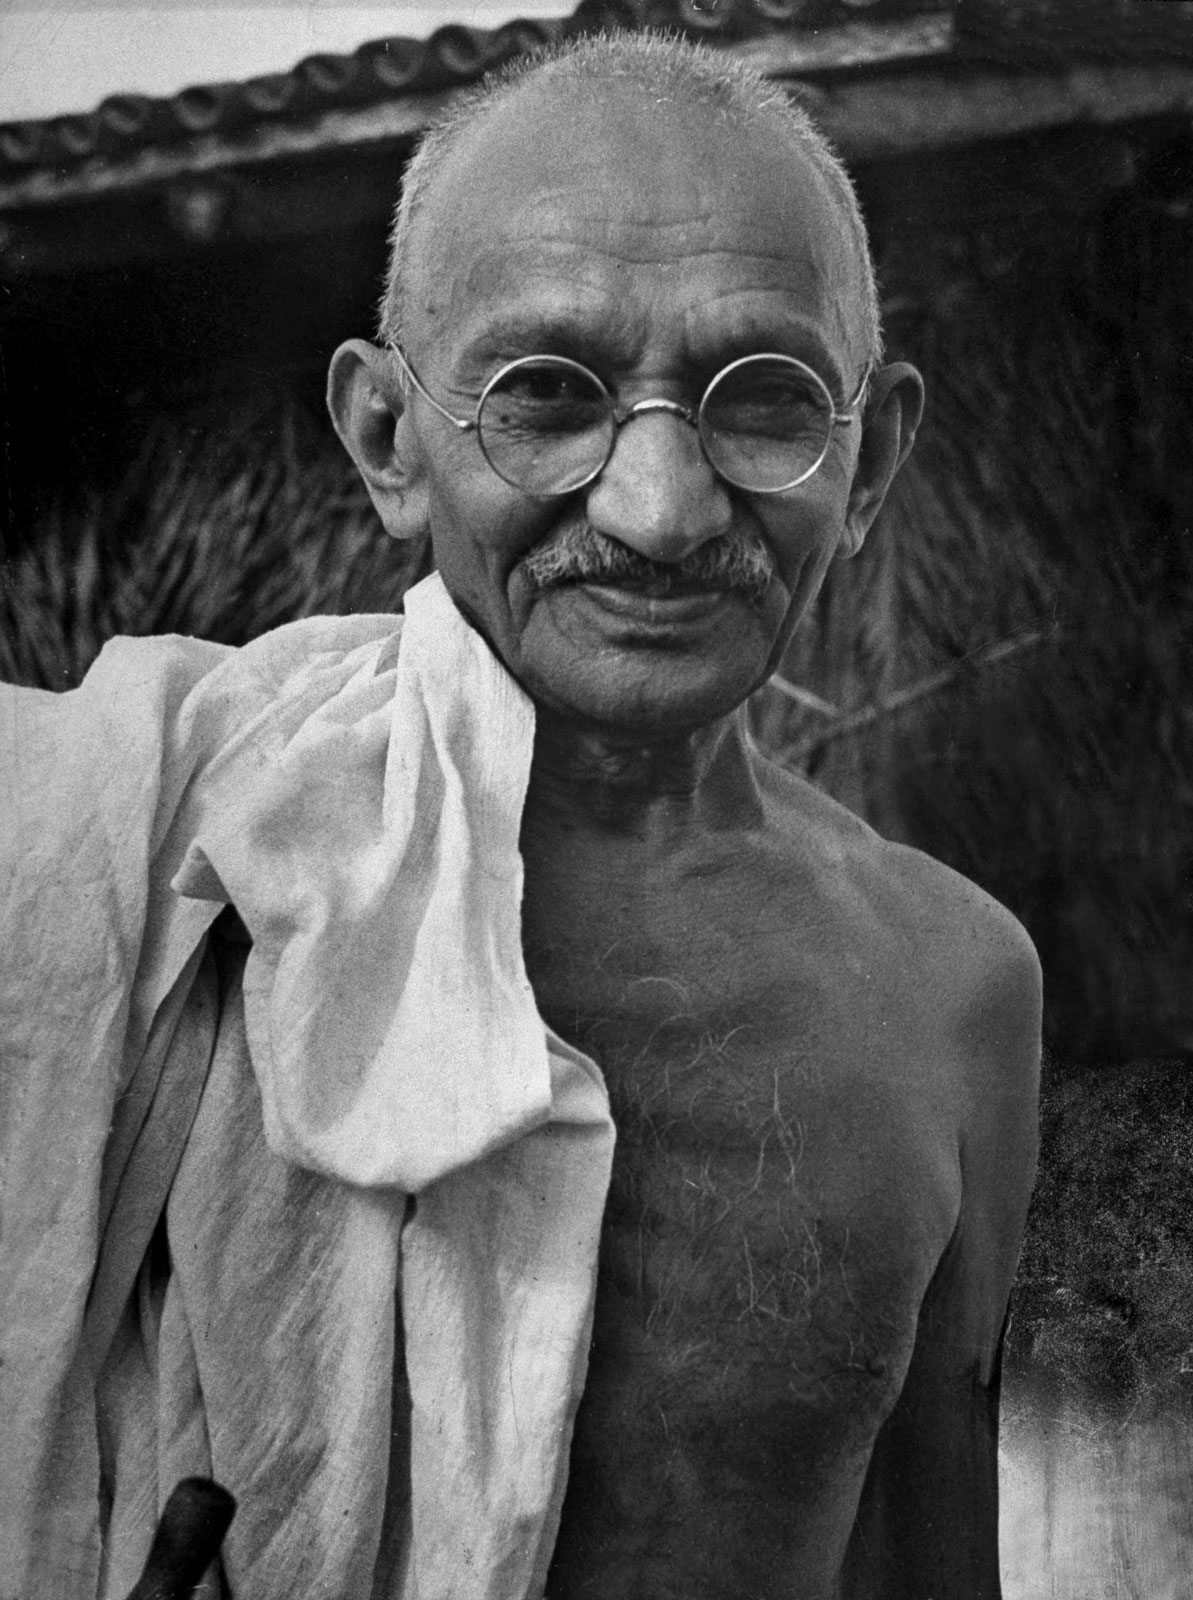 Mohandas-Karamchand-Gandhi-commonly-known-as-Mahatma-Gandhi-was-the-preeminent-leader-of-Indian-na-wallpaper-wp4608377